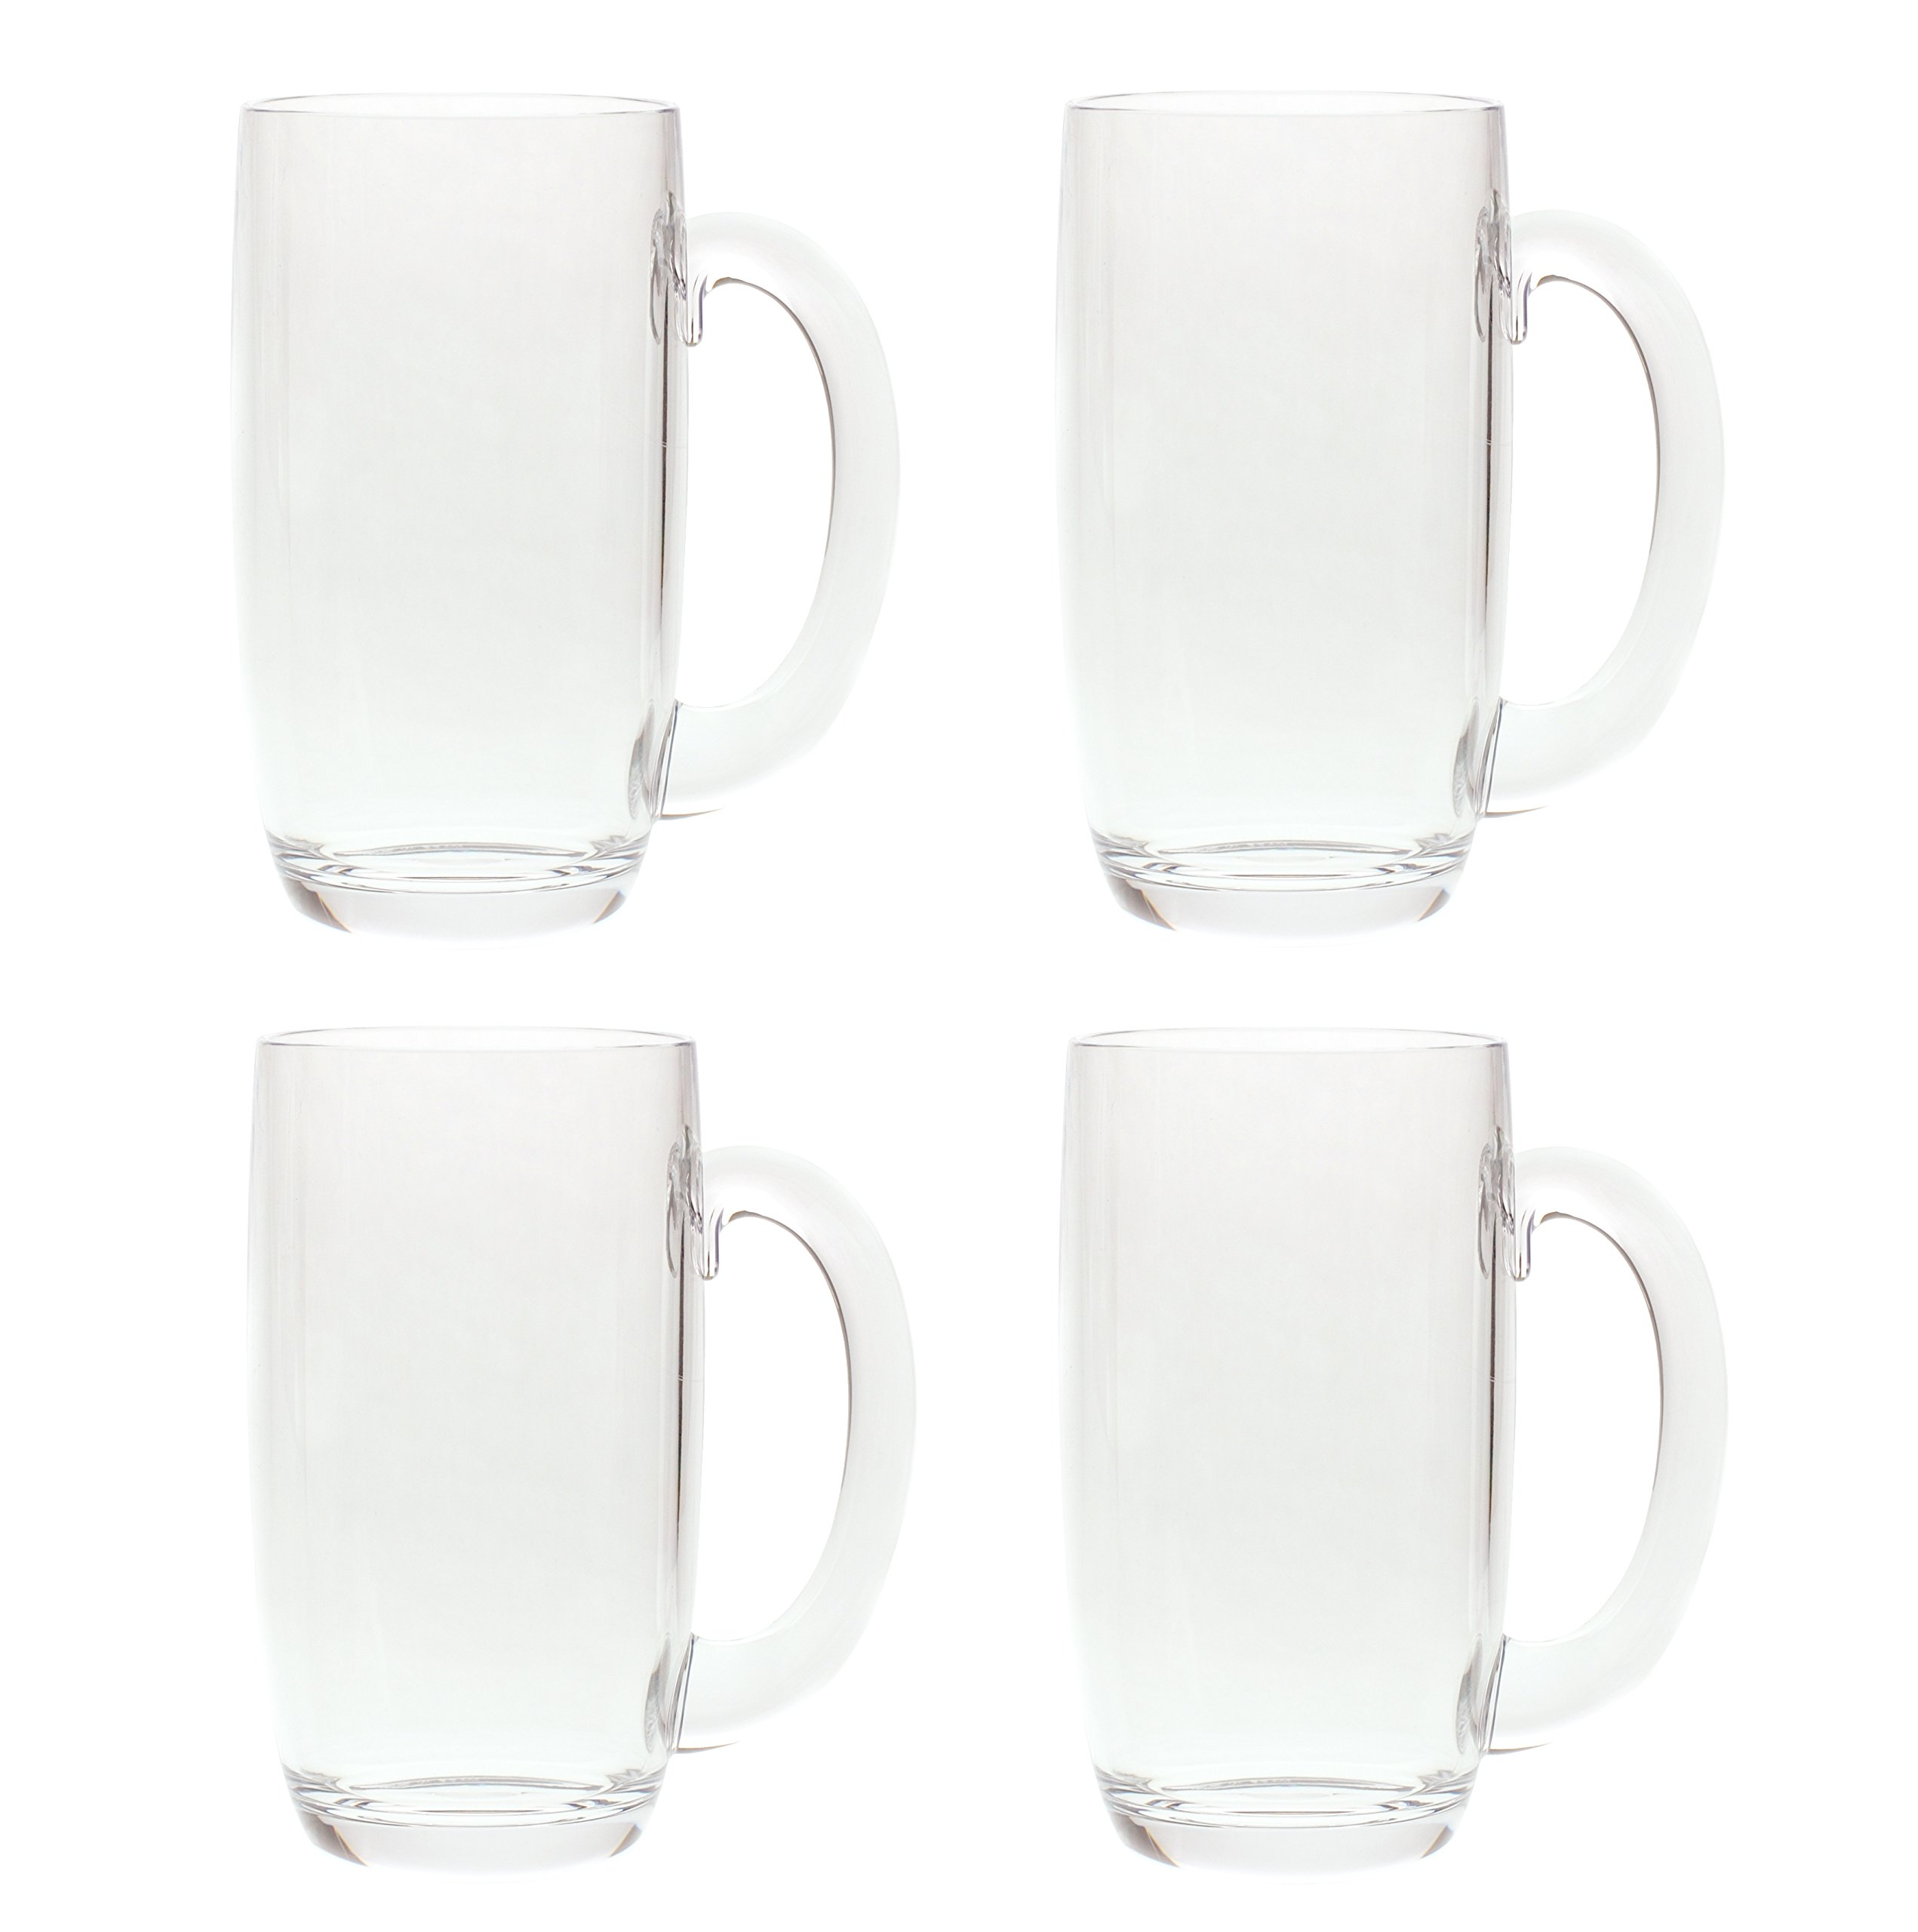 QG 21 Ounces Clear Acrylic Plastic Drinking Beer Mug Set of 4 by QGoods